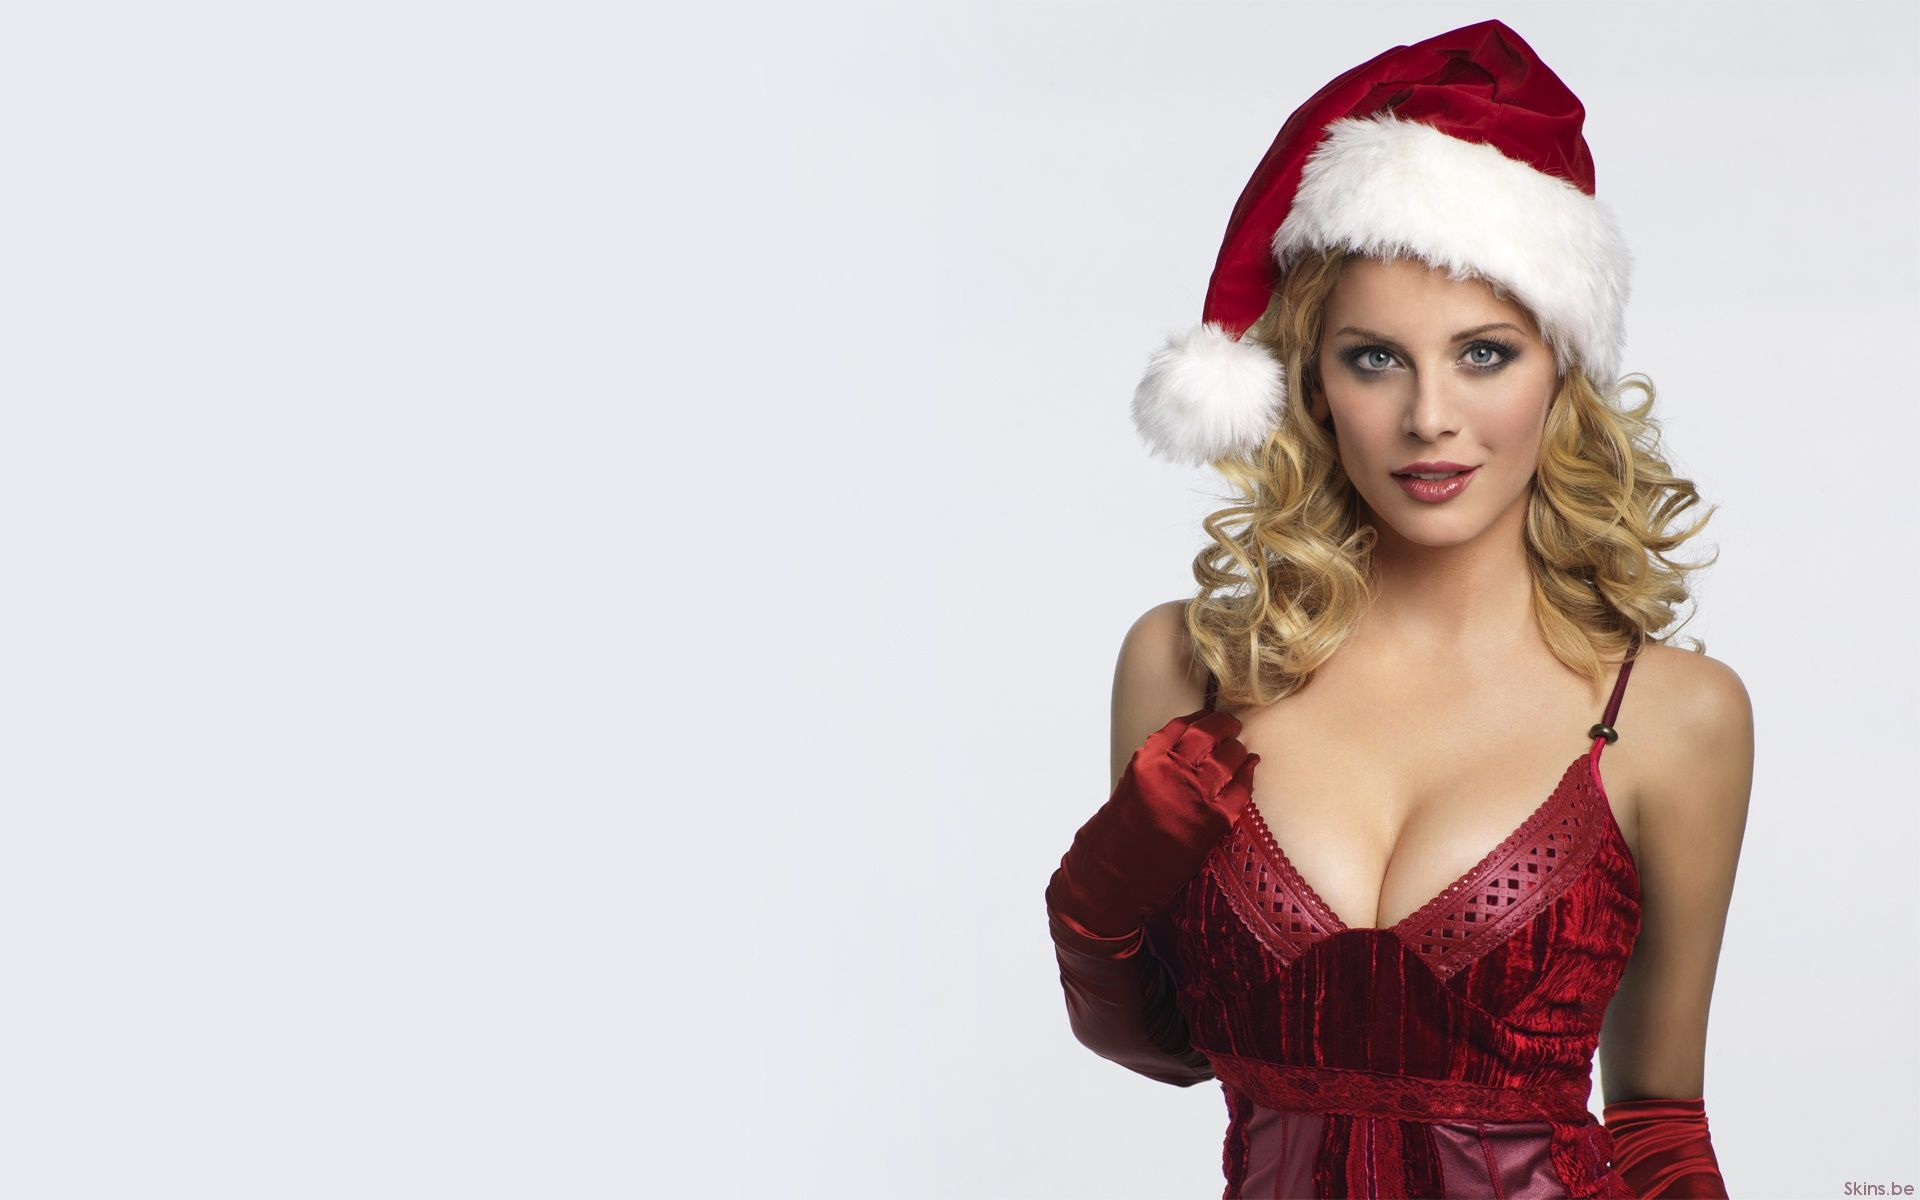 sexy santa girl backgrounds hd wallpapers santa claus